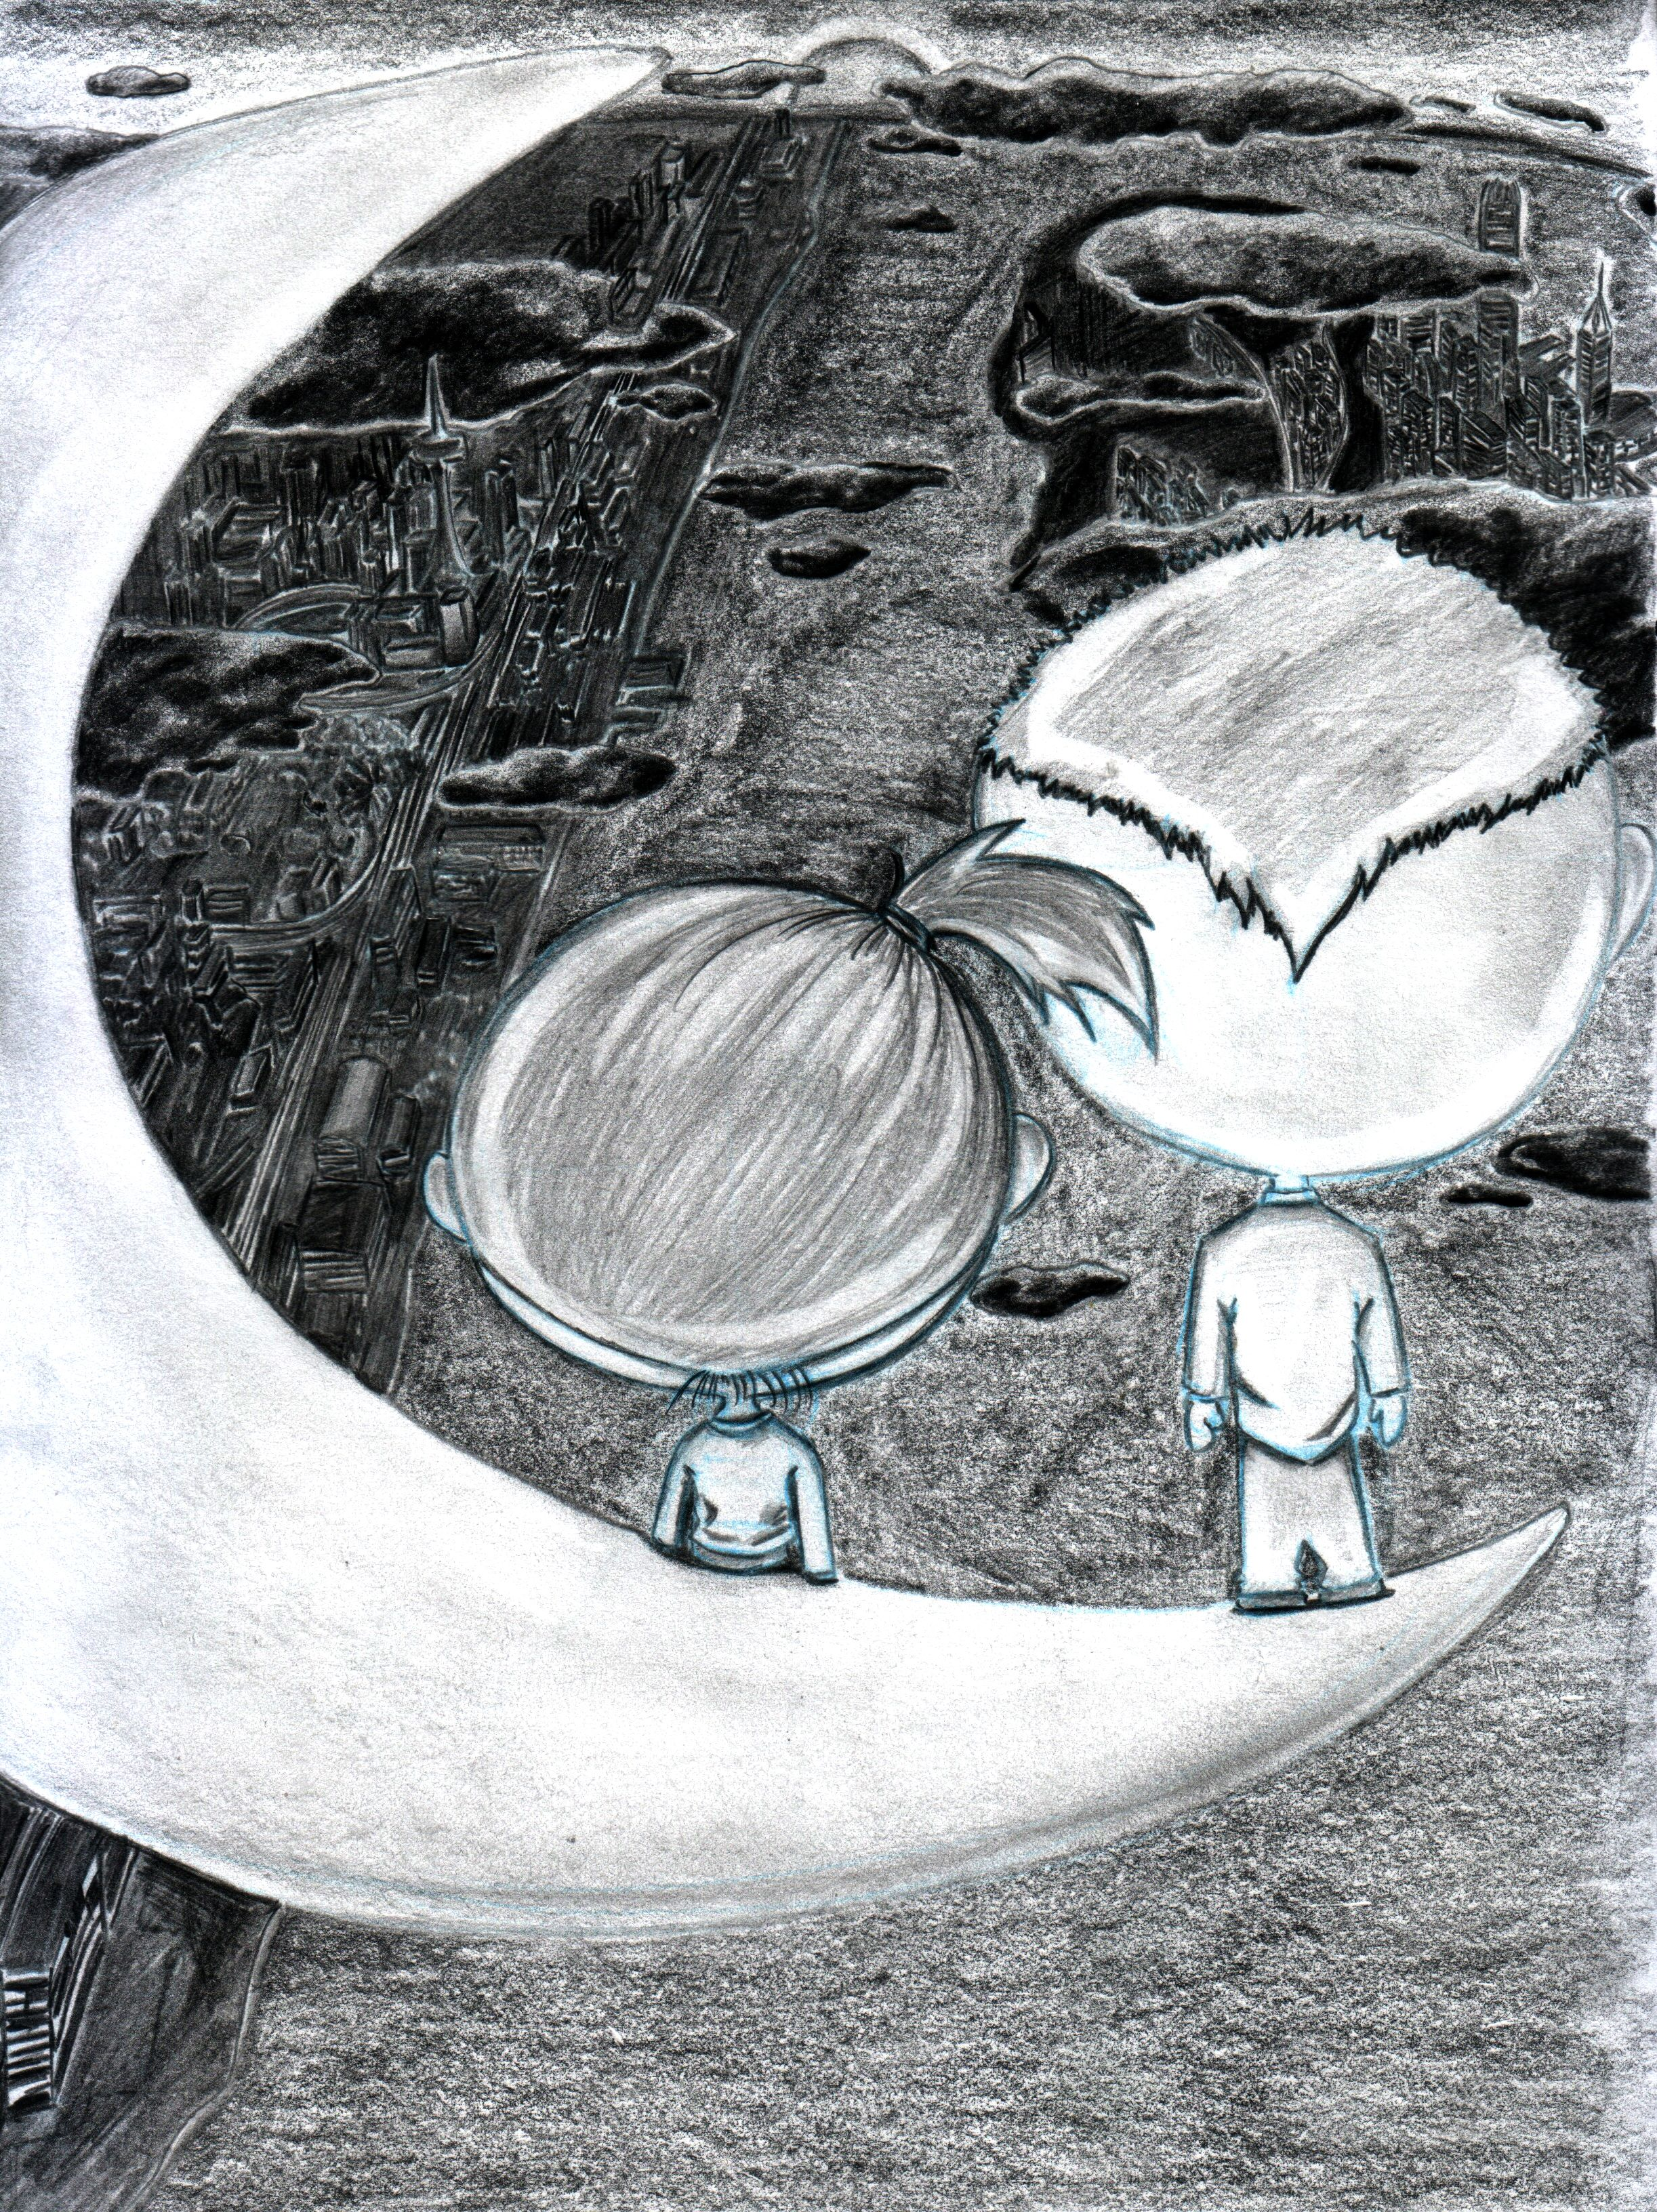 Title : On the Moon (Pencil Drawing) by danny lam